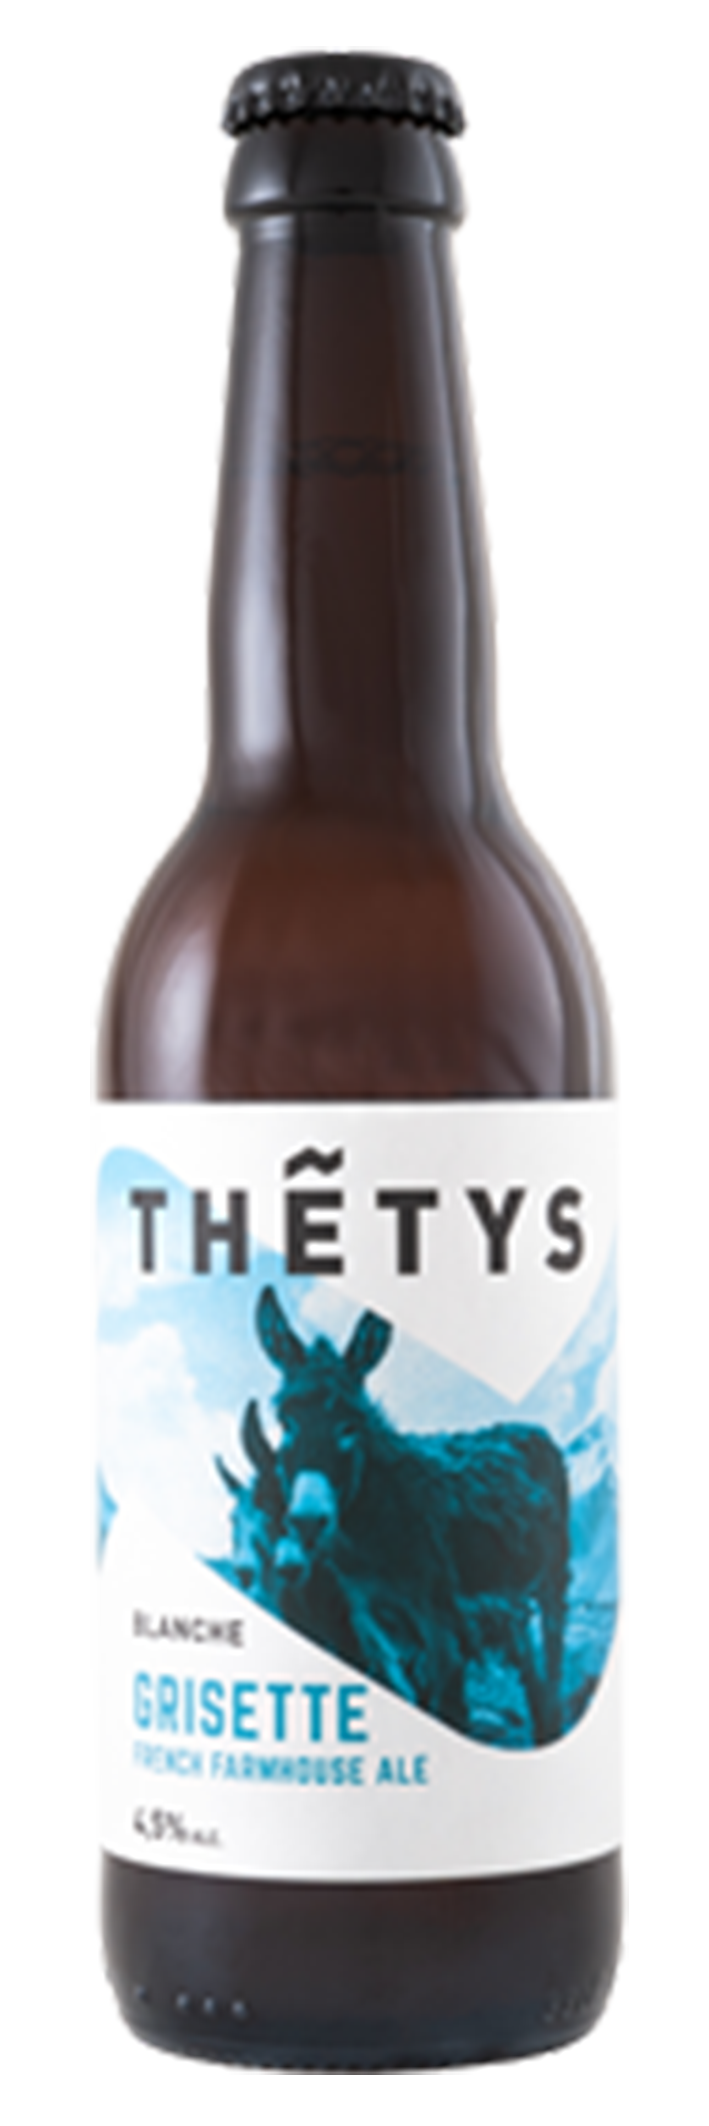 Thetys - Grisette - Blanche